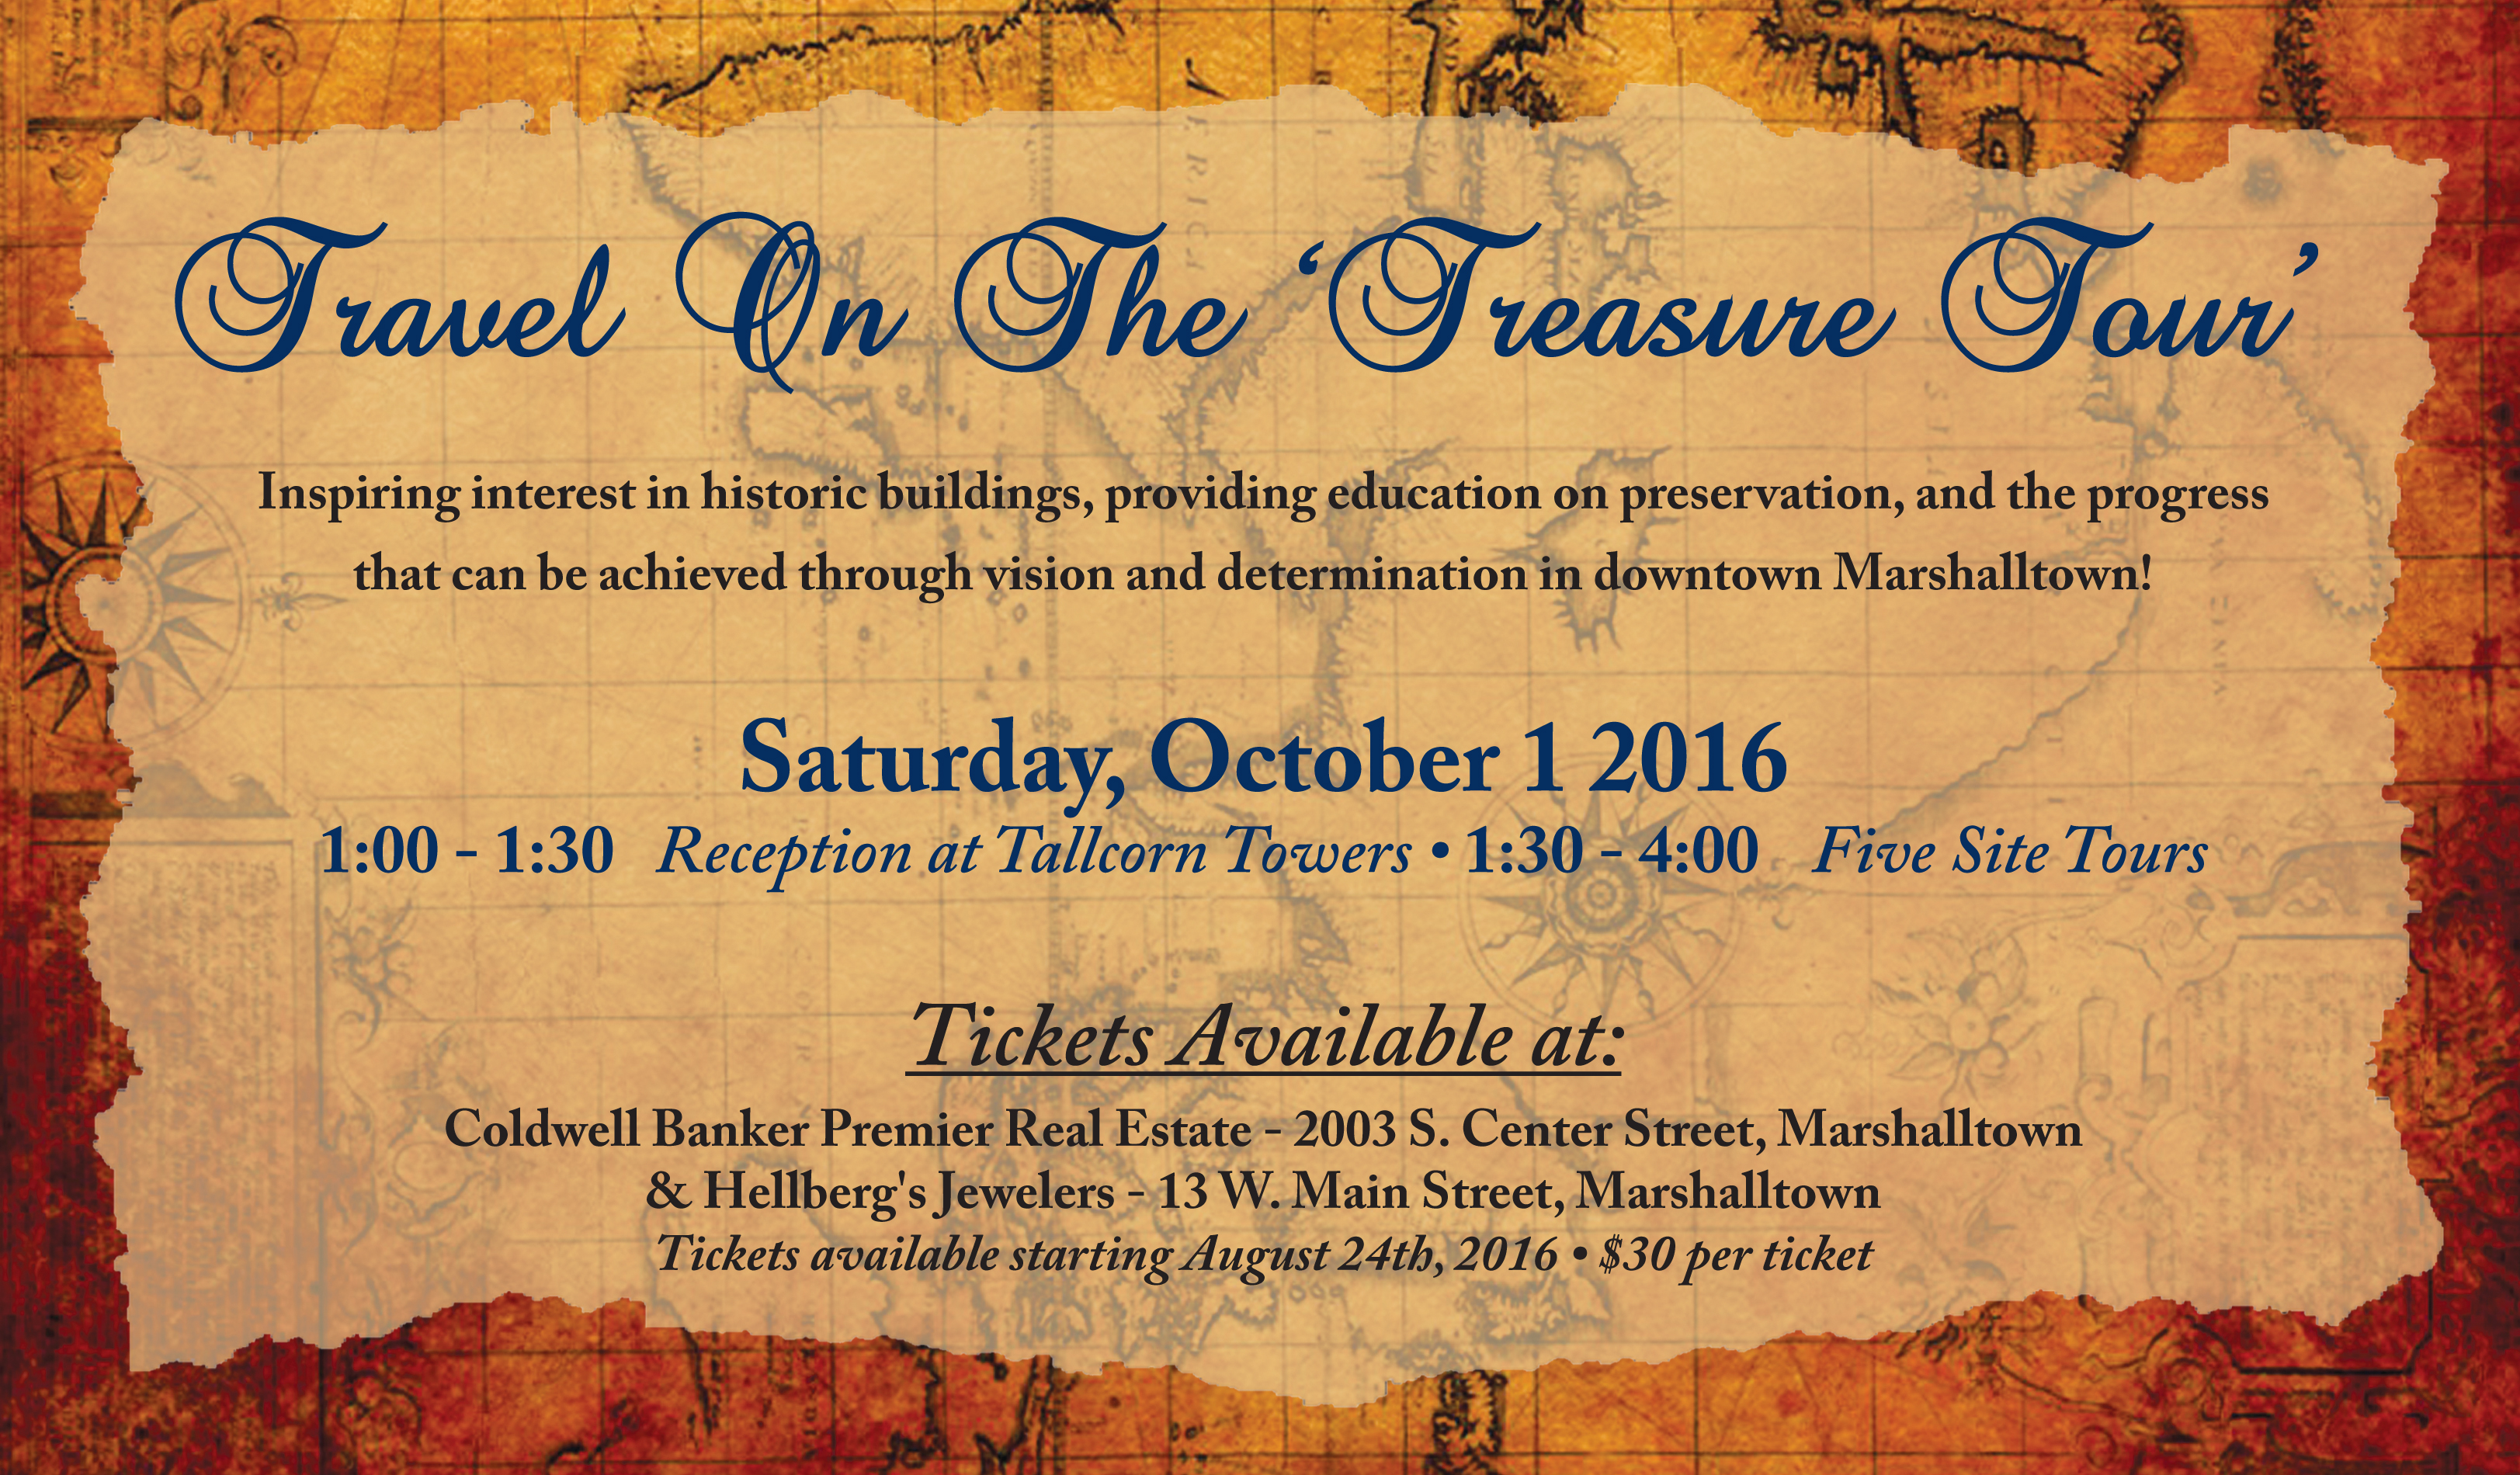 Treasure Tour Info